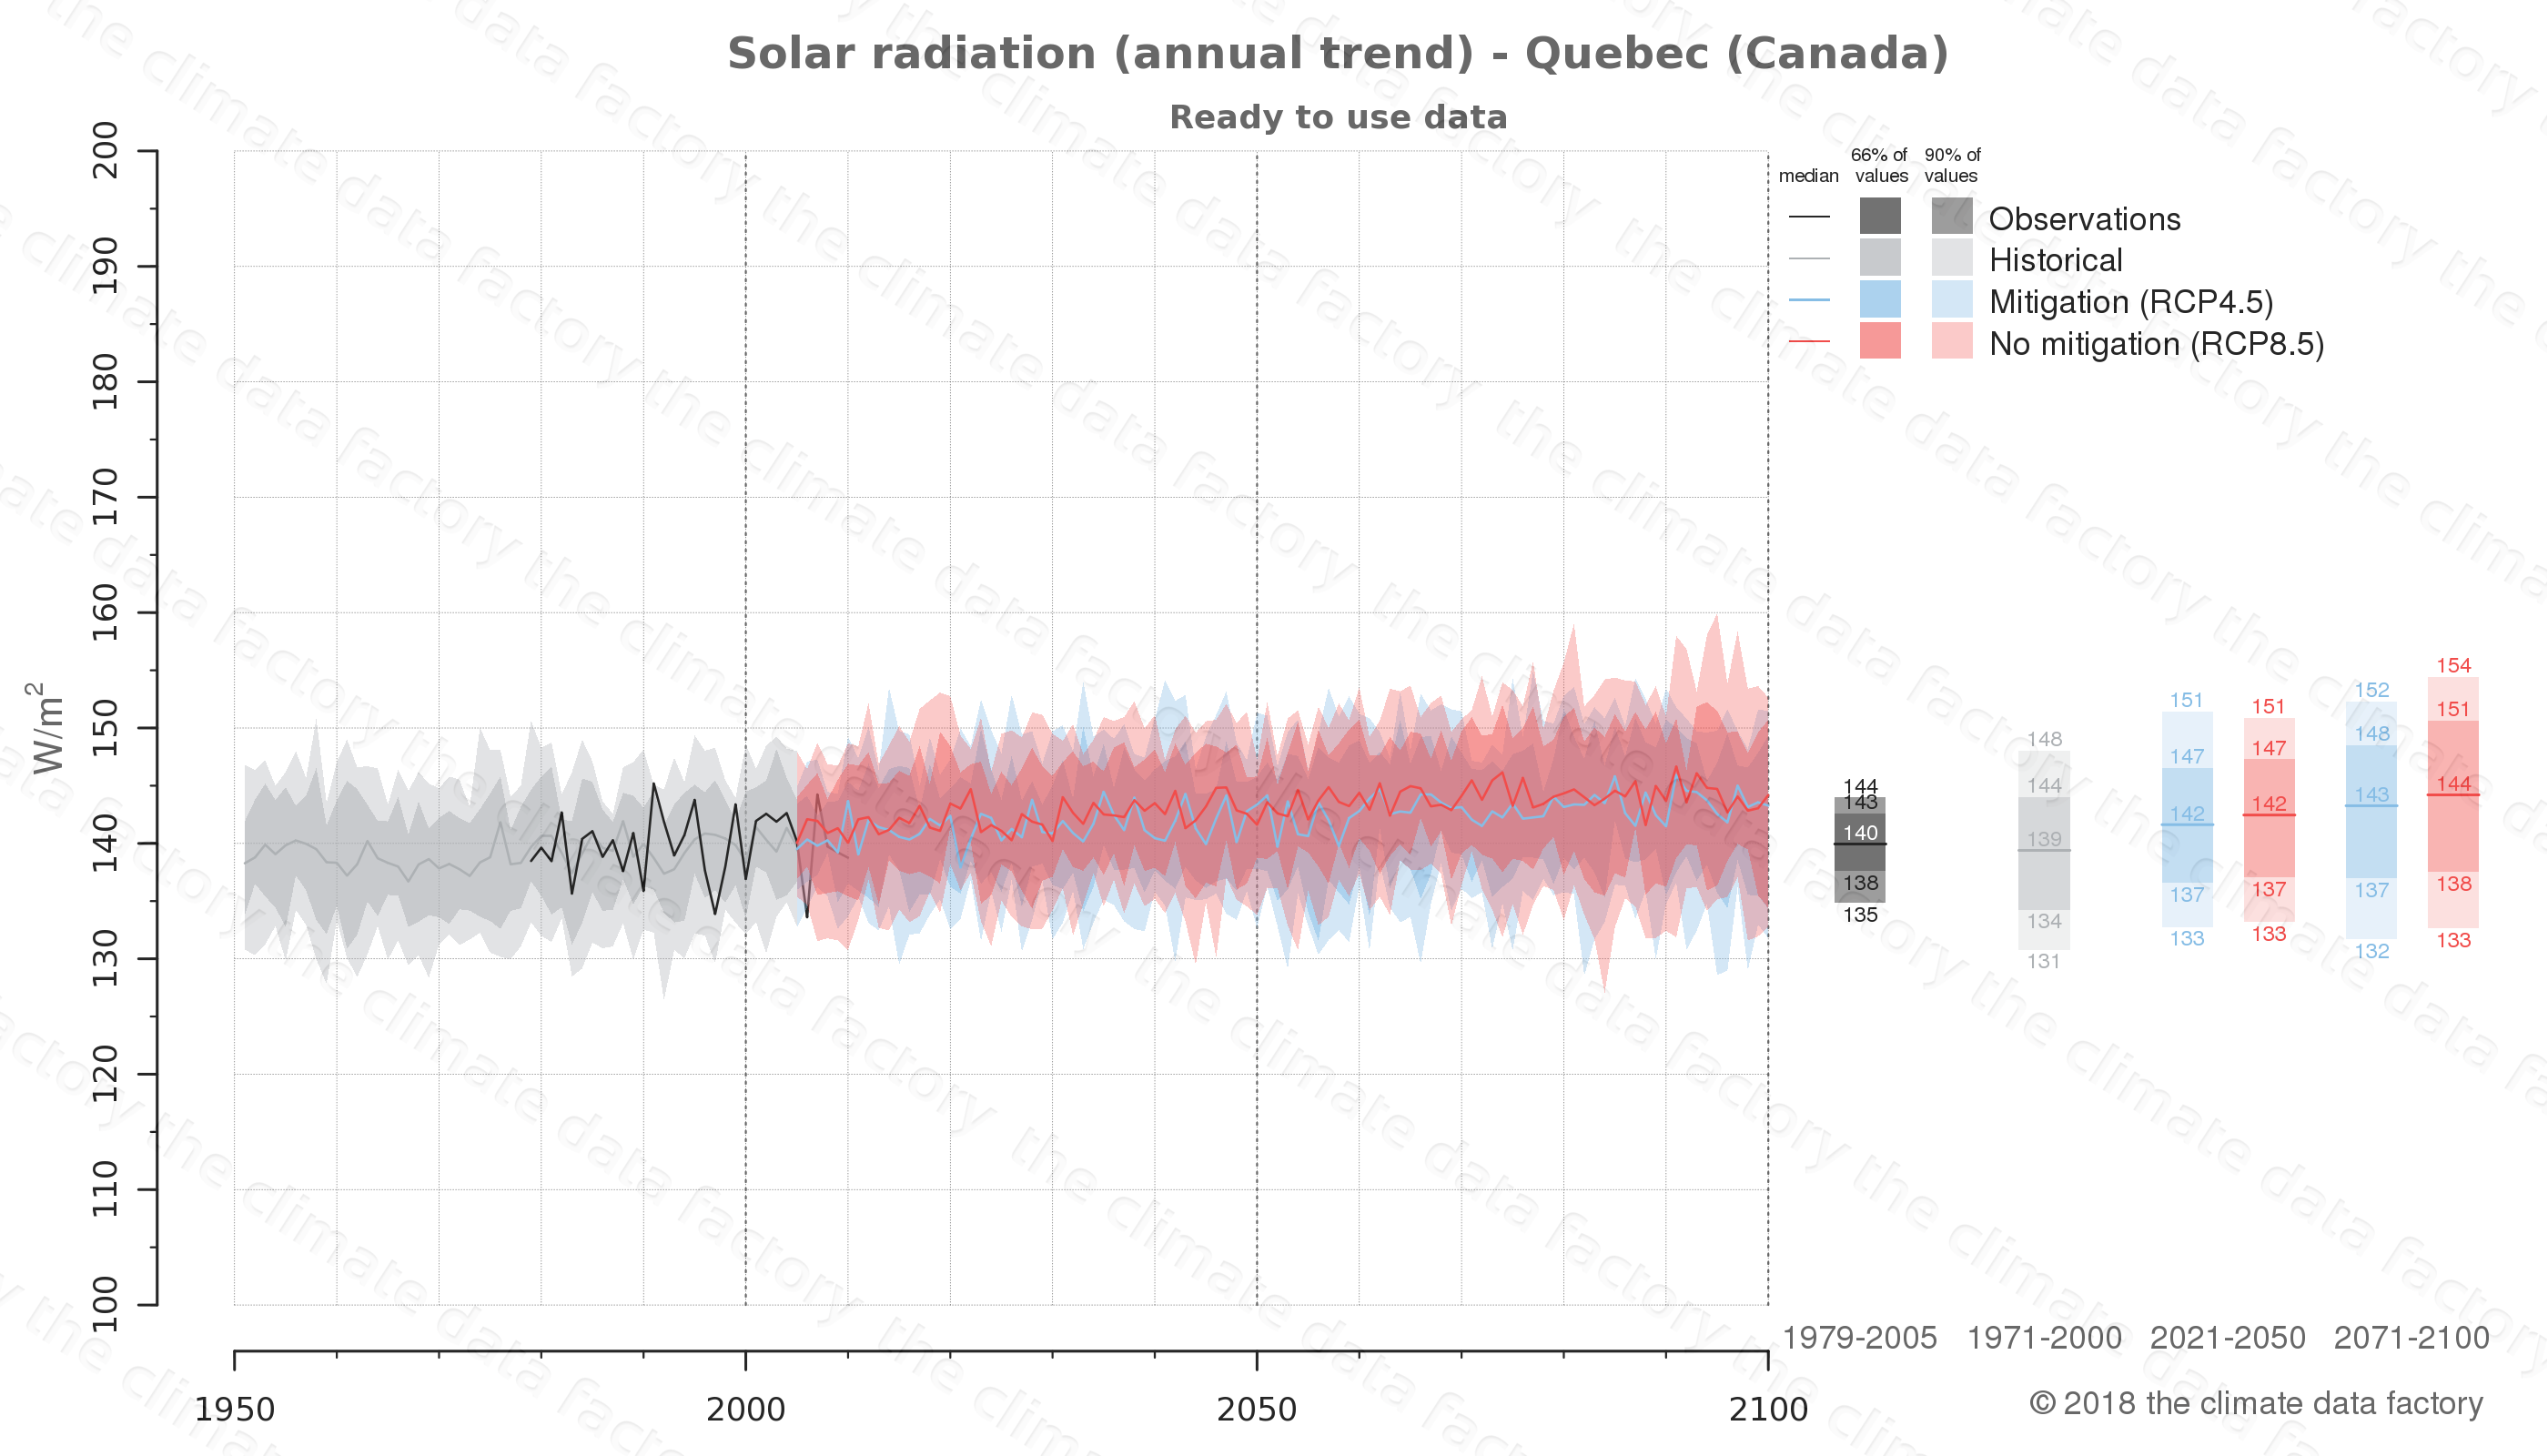 climate change data policy adaptation climate graph city data solar-radiation quebec canada